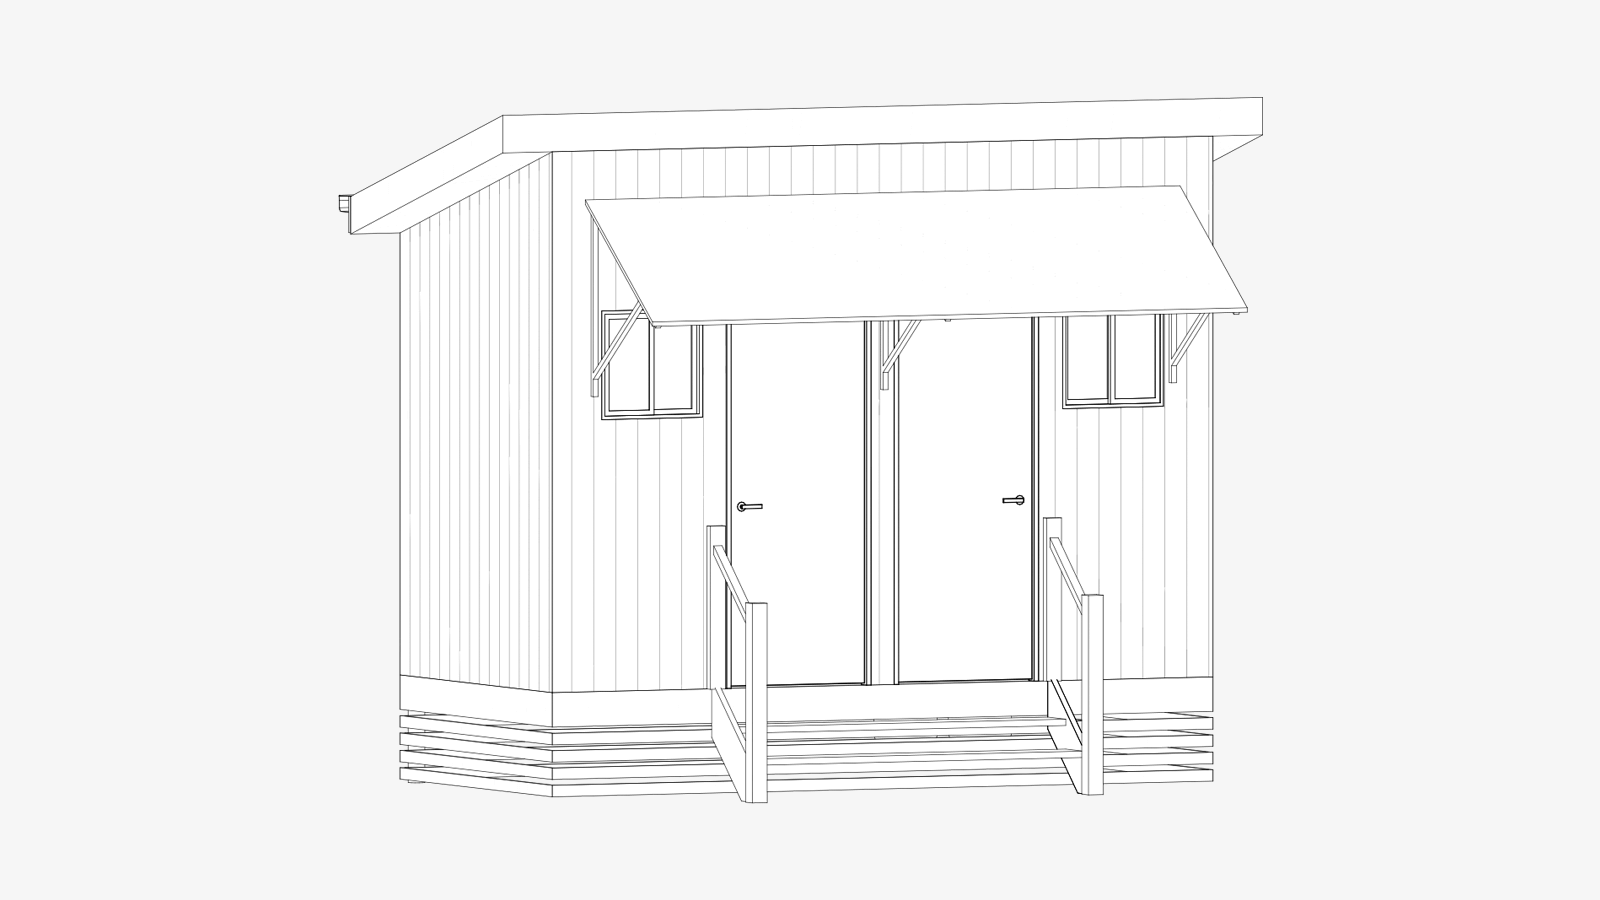 Rendered image of a Bunk House